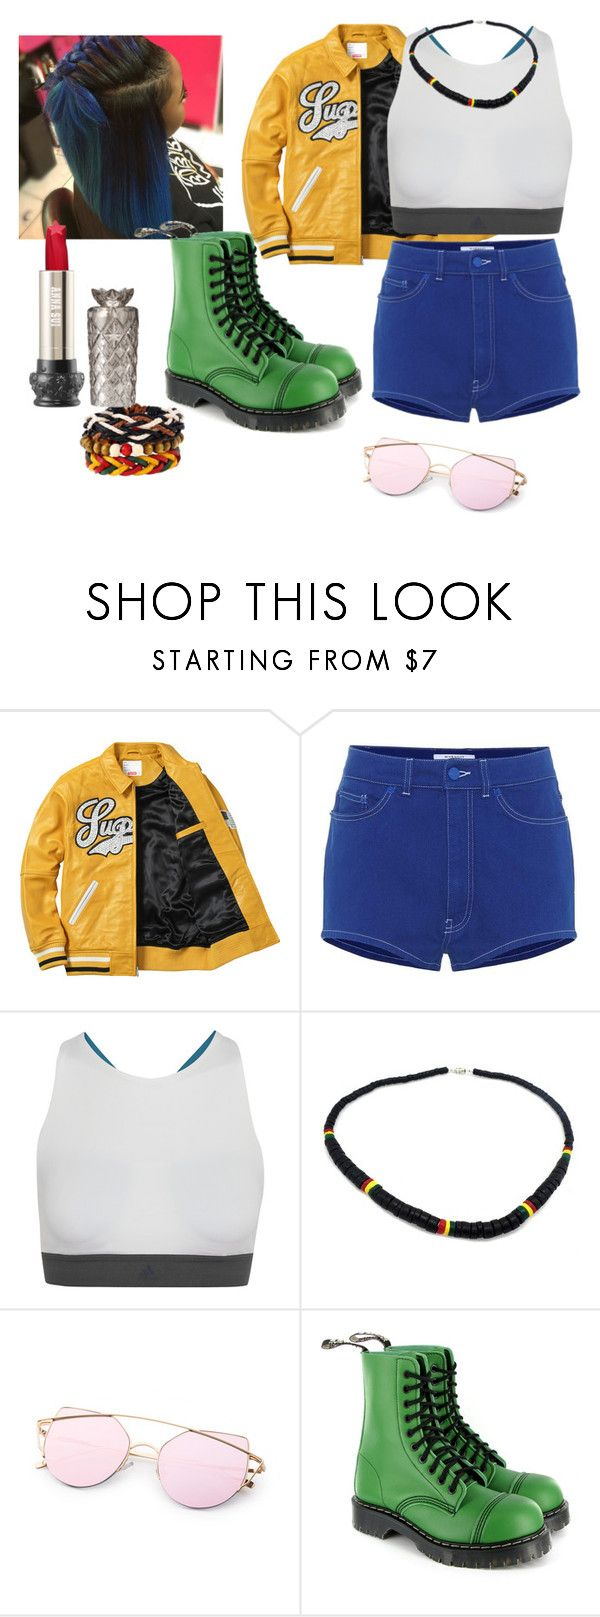 """""""Jamaica Fever"""" by penny44224 ❤ liked on Polyvore featuring Givenchy, adidas and Vegetarian Shoes"""